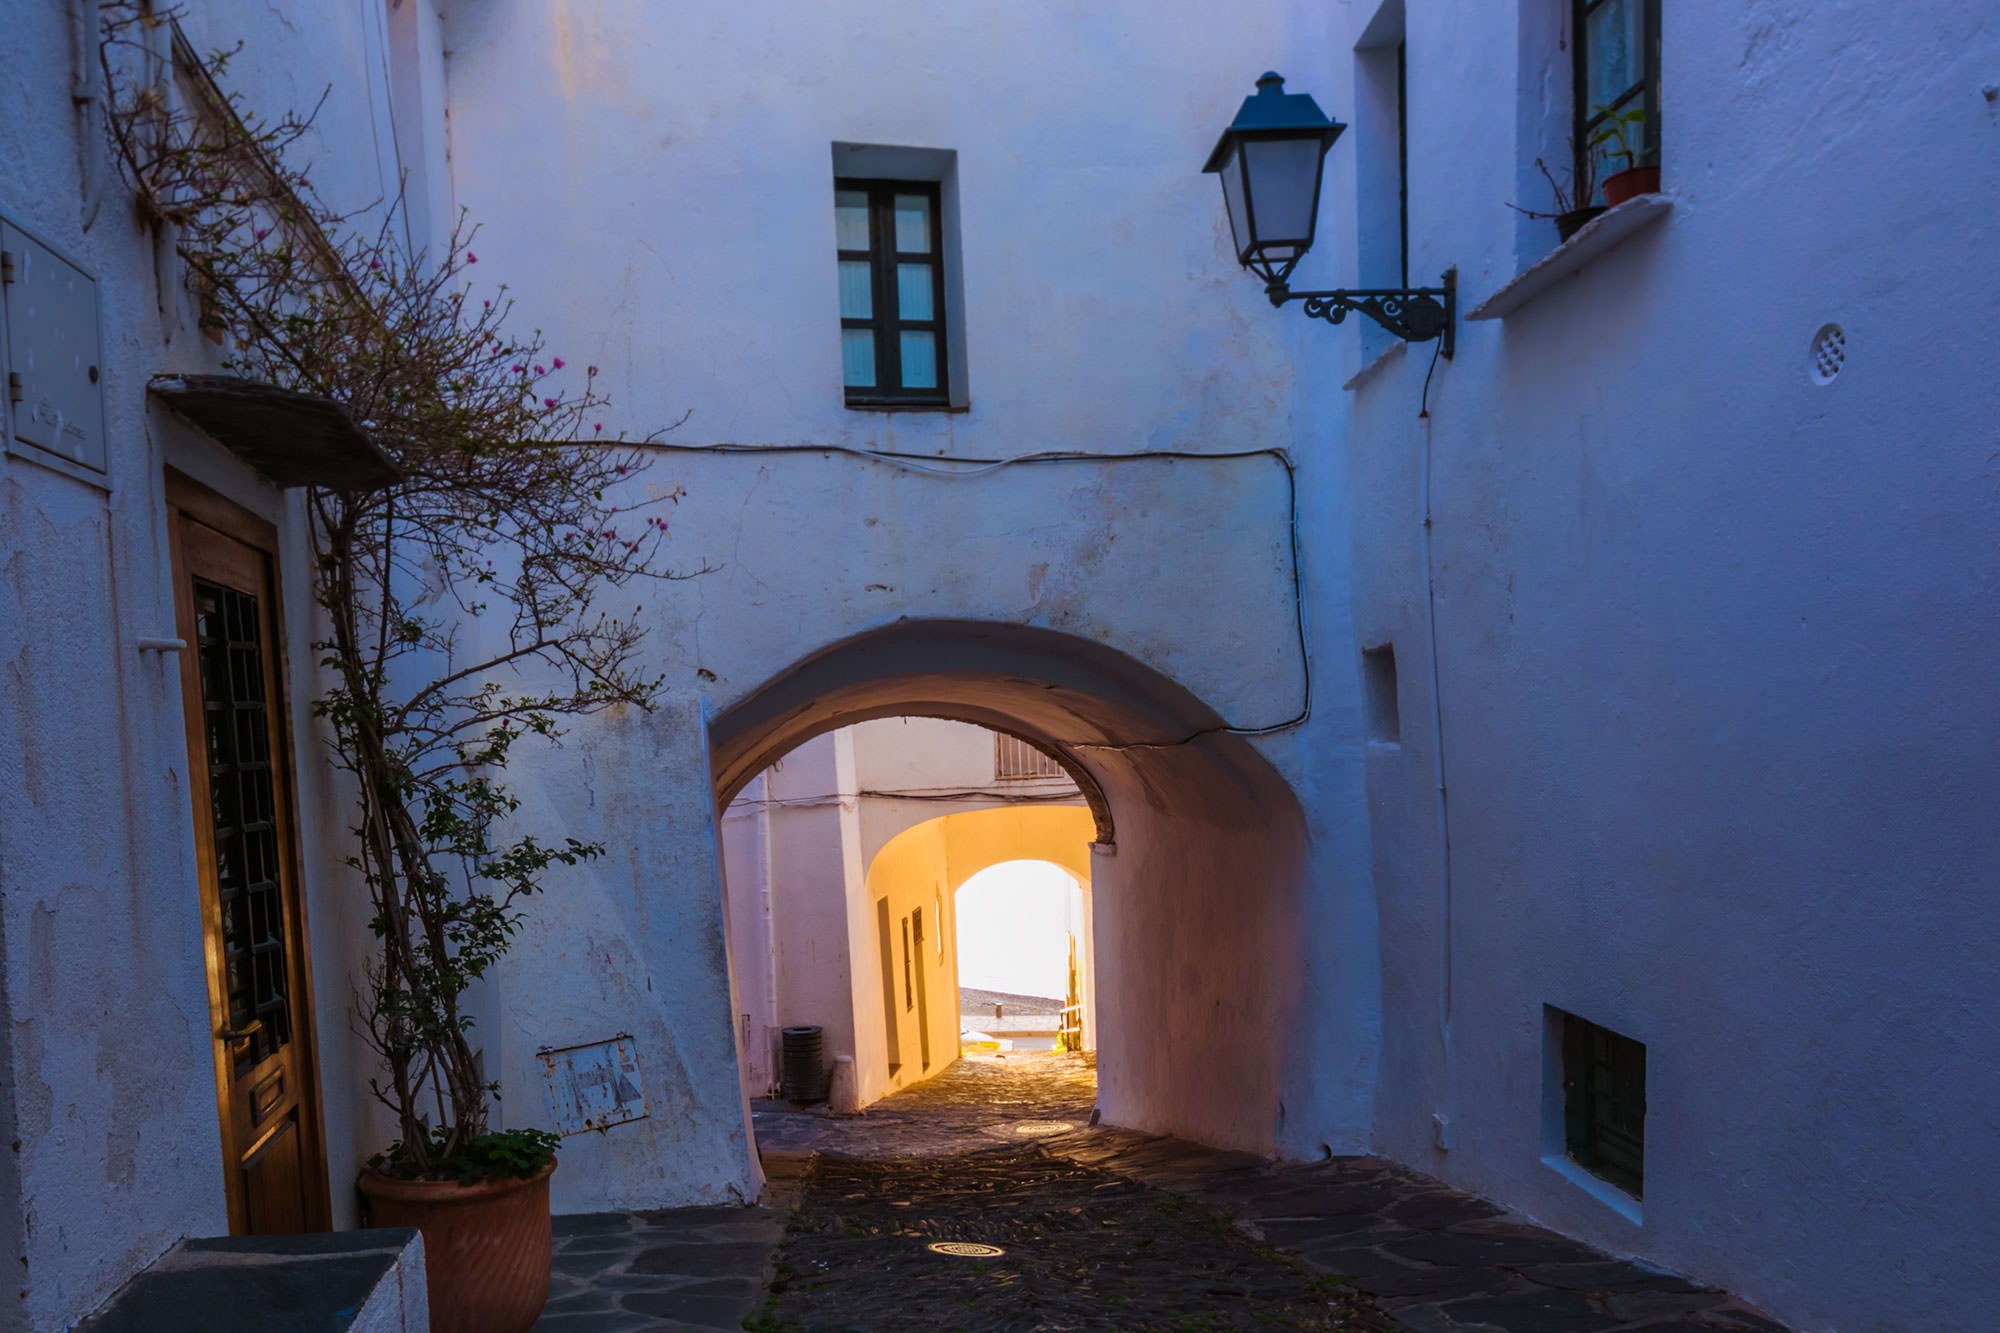 Arch in downtown Cadaques